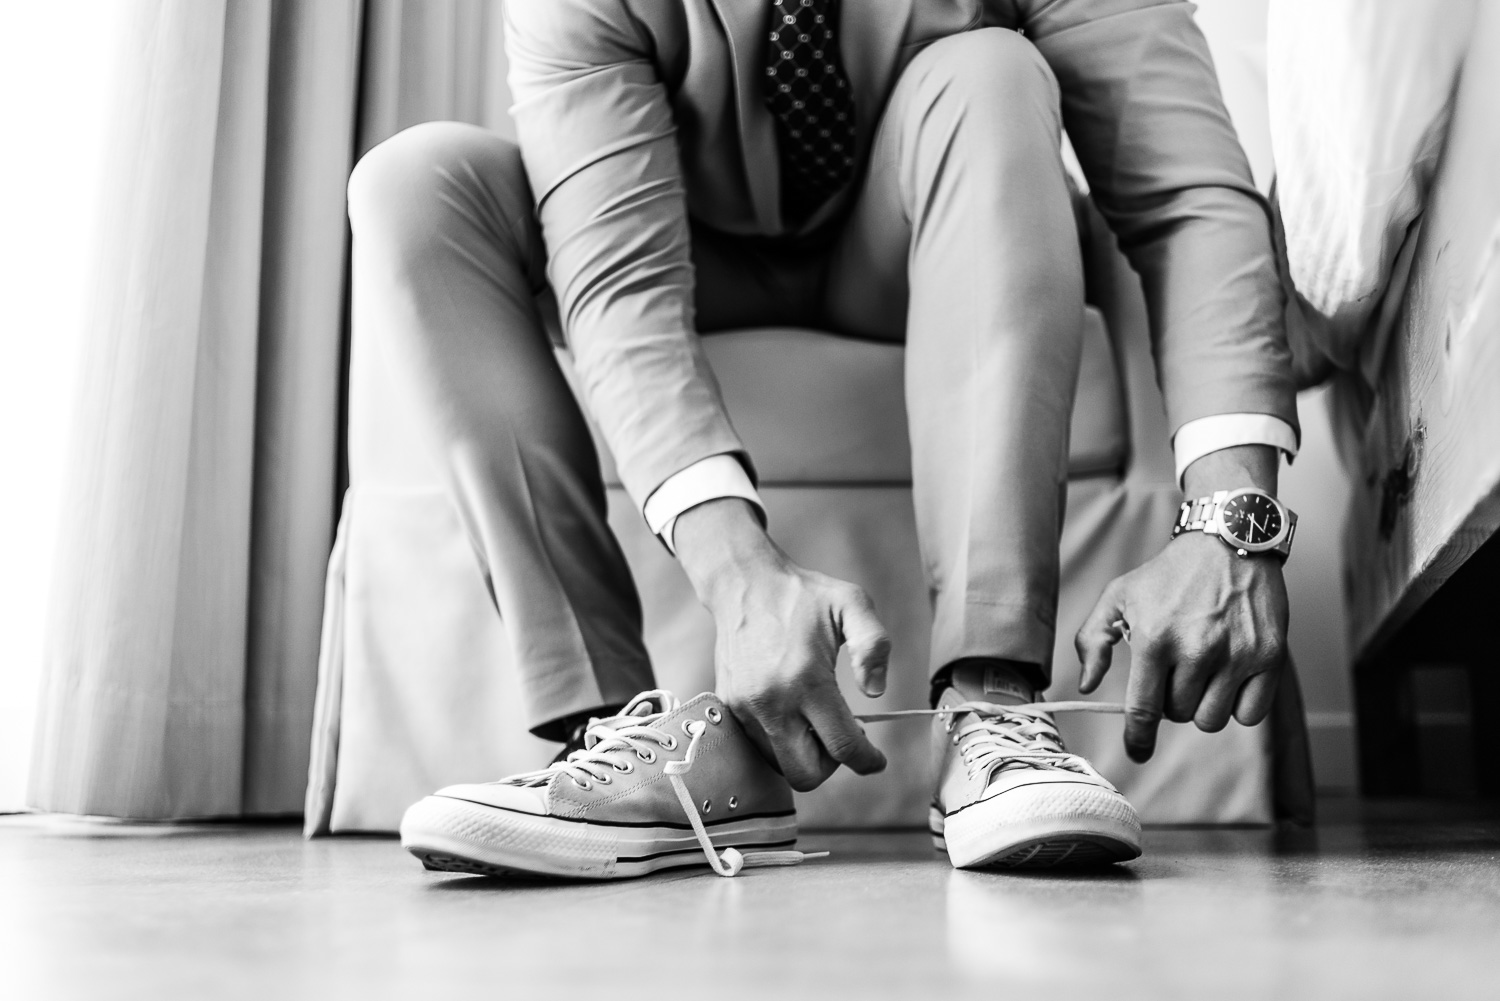 Groom is getting ready at his wedding day, Here you can see final touch of his Converse shoes. GVphotographer is professional destination wedding photographer based in Cabo San Lucas, Mexico